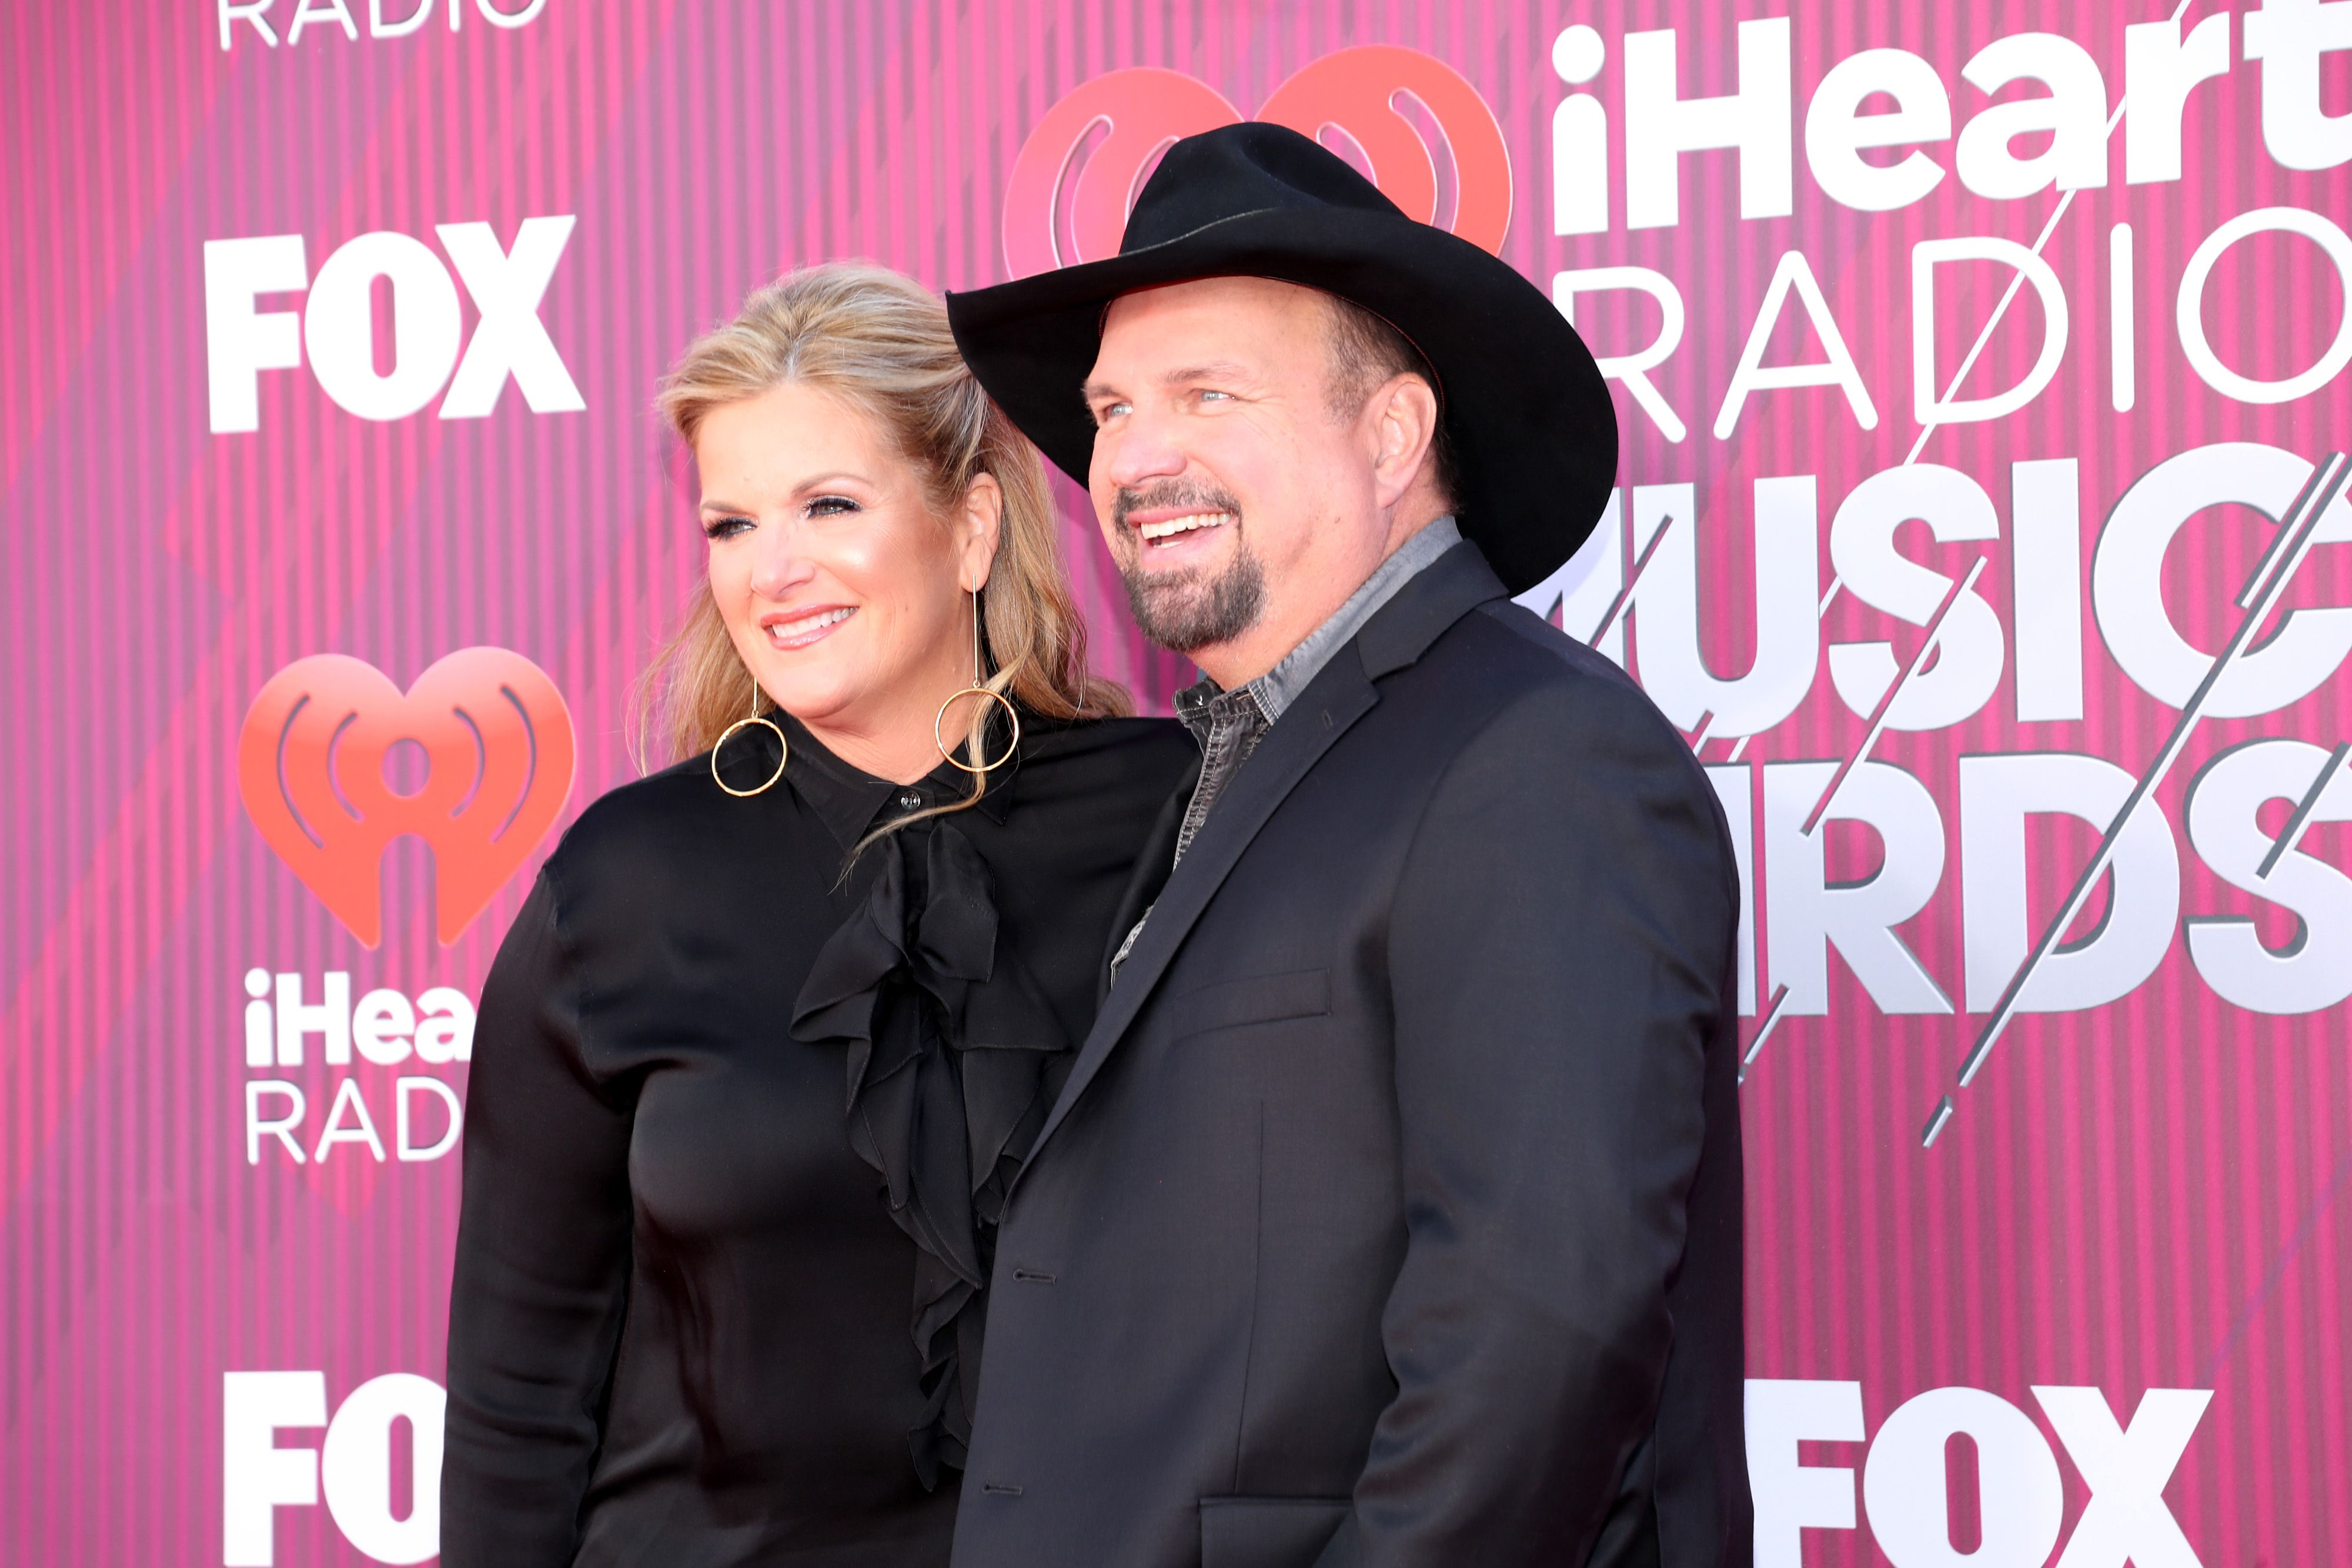 Trisha Yearwood and Garth Brooks at the 2019 iHeartRadio Music Awards on March 14, 2019 | Photo: Getty Images